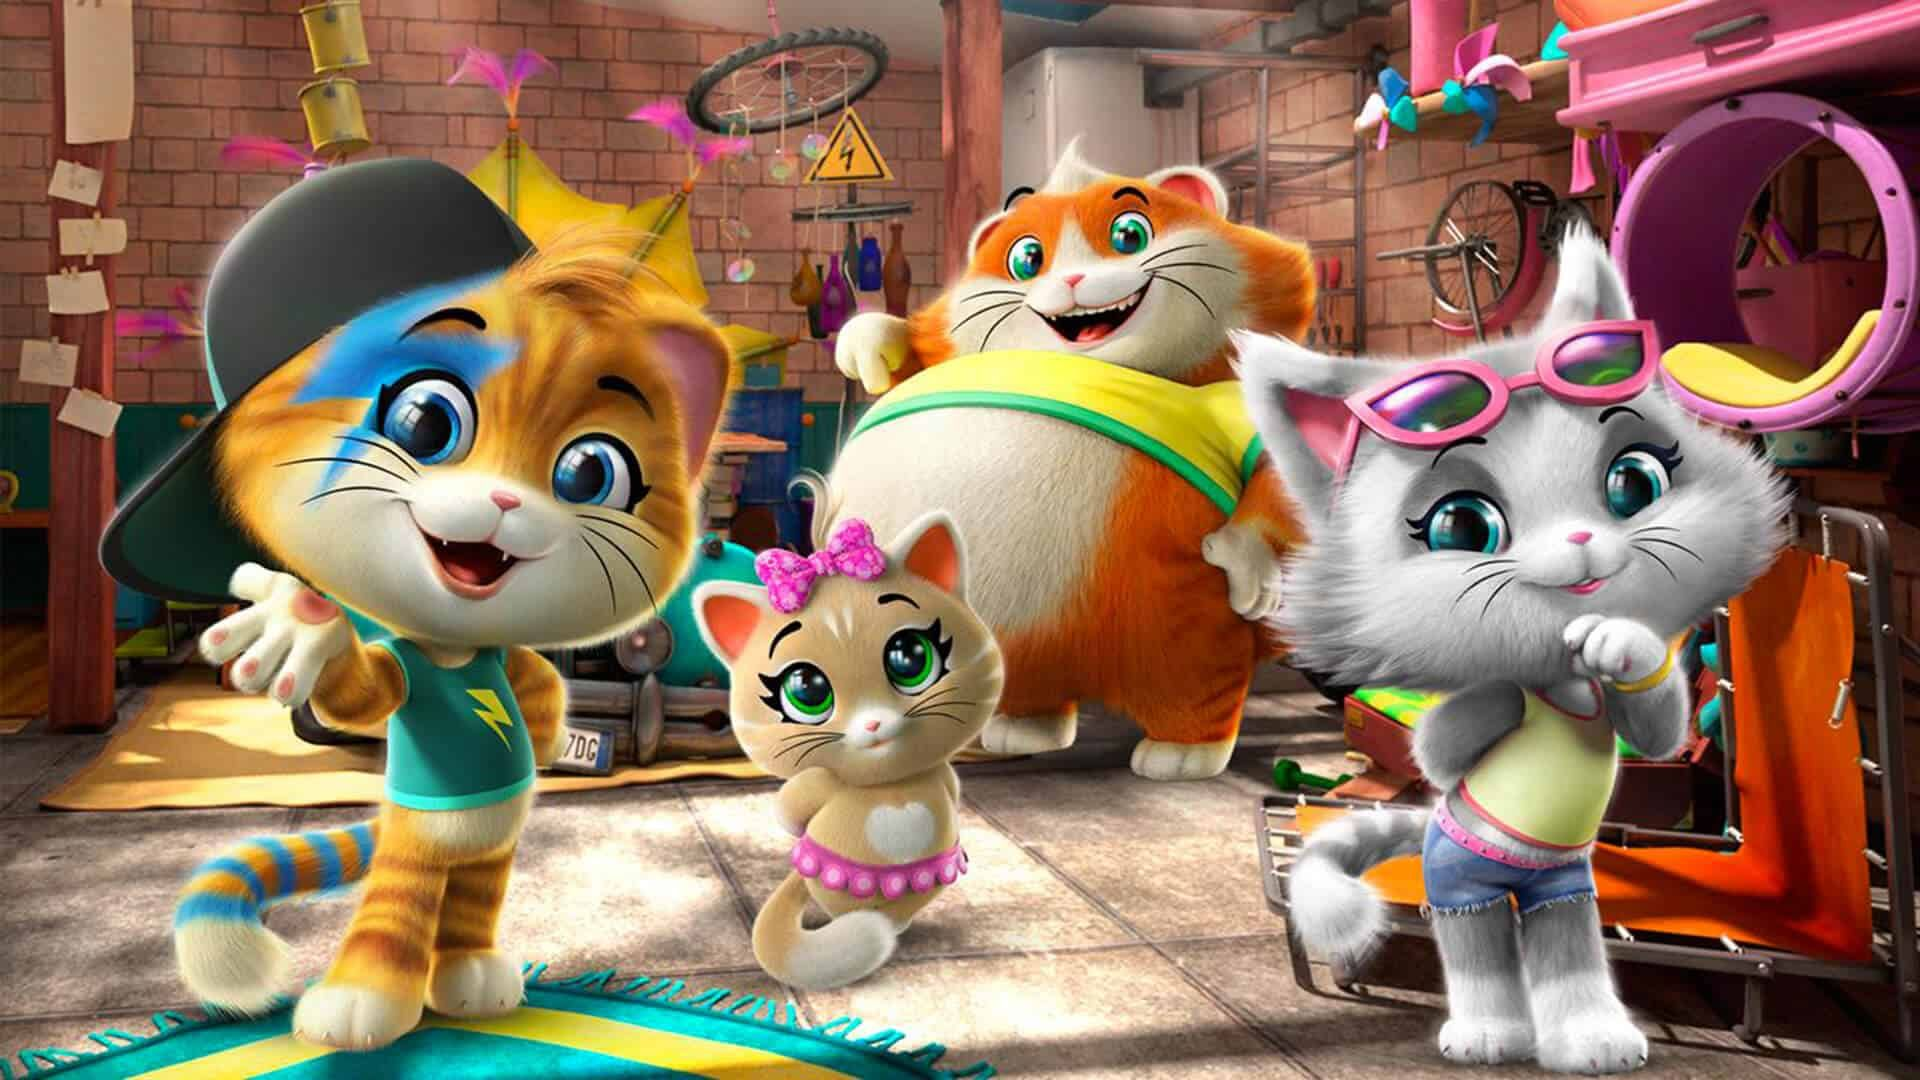 44 Cats Review The New Animated Preschool Series